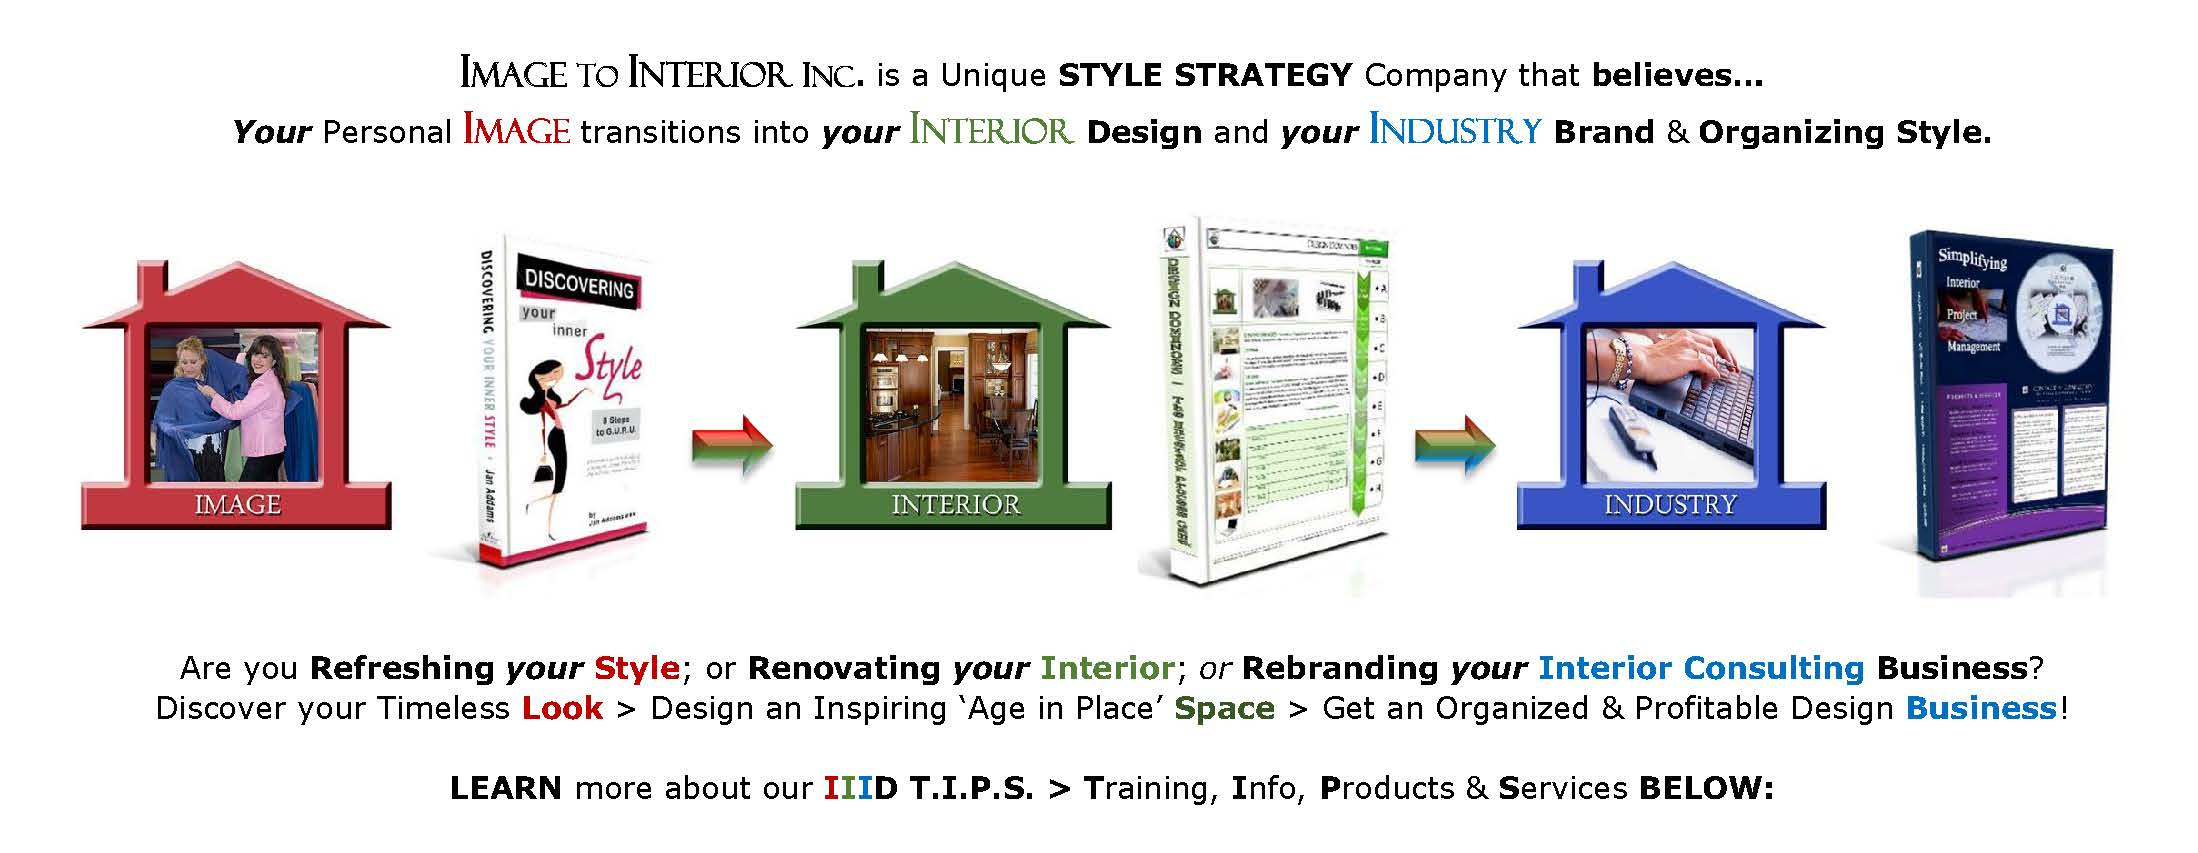 Home Page Image To Interior Inc